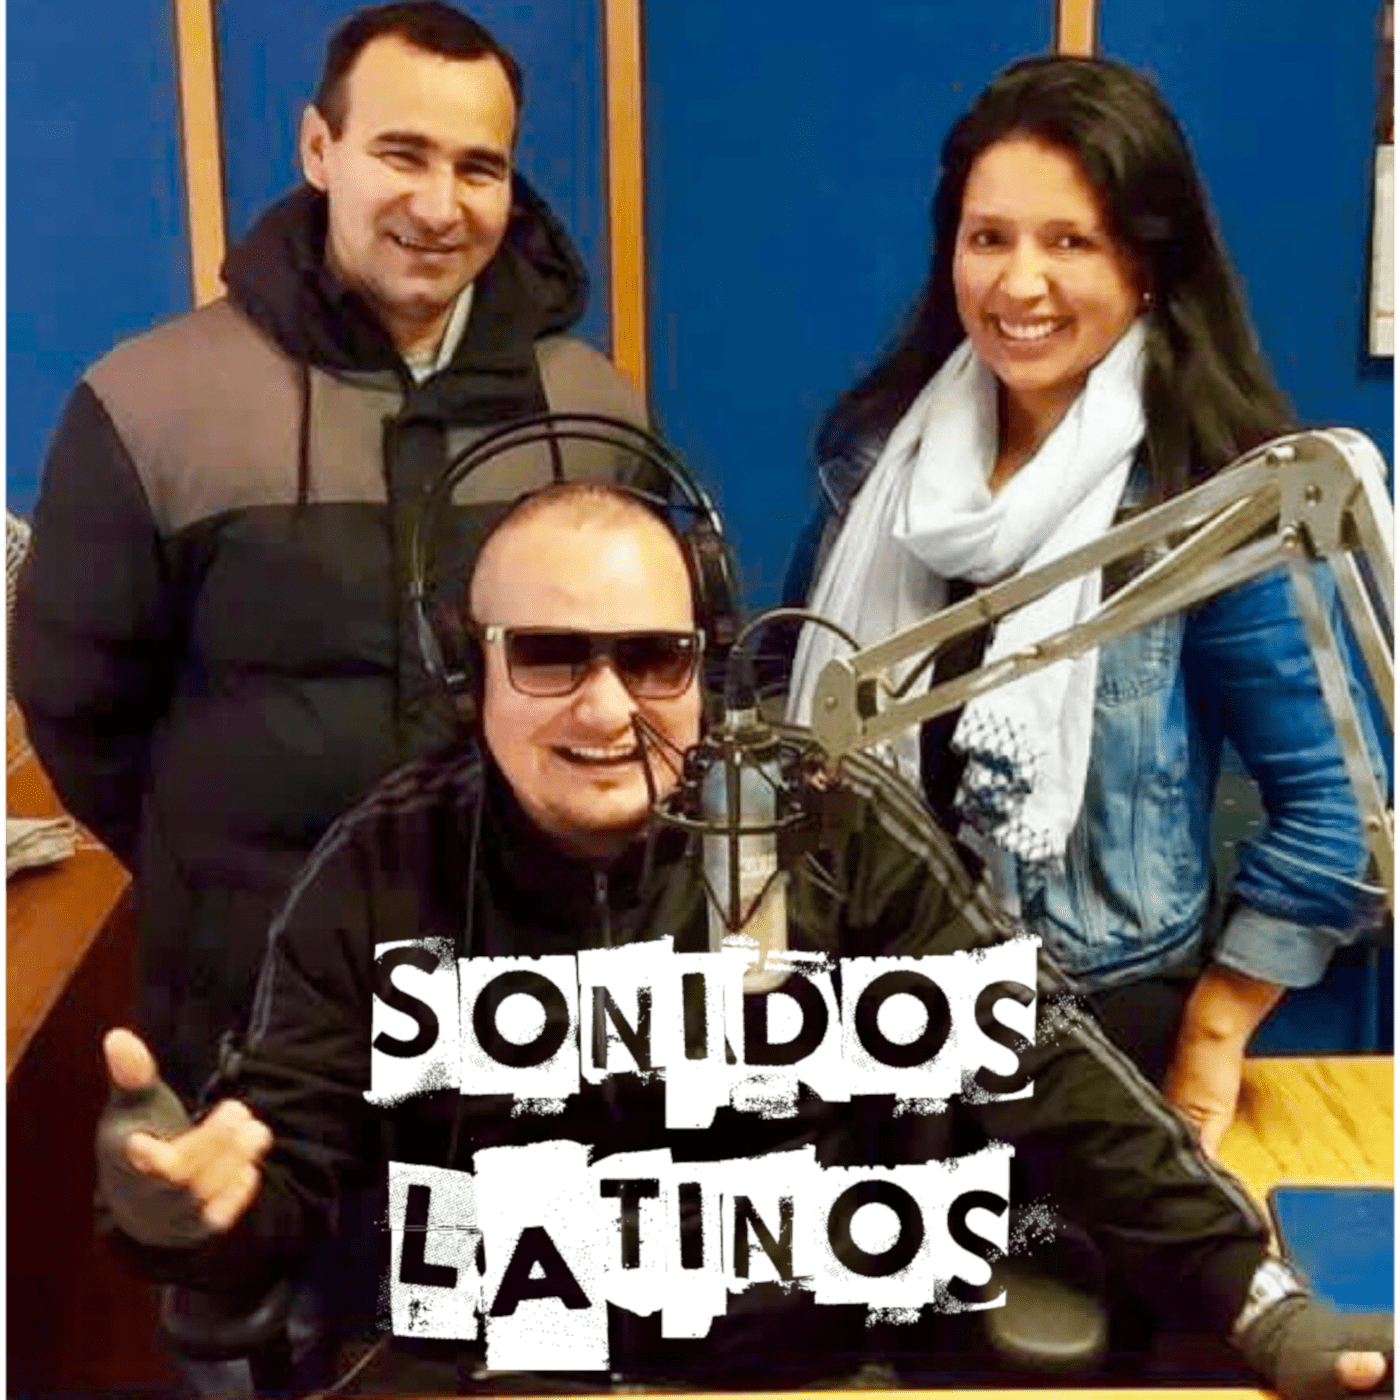 https://cdn.accessradio.org/StationFolder/radiosouthland/Images/Sonidos1.png